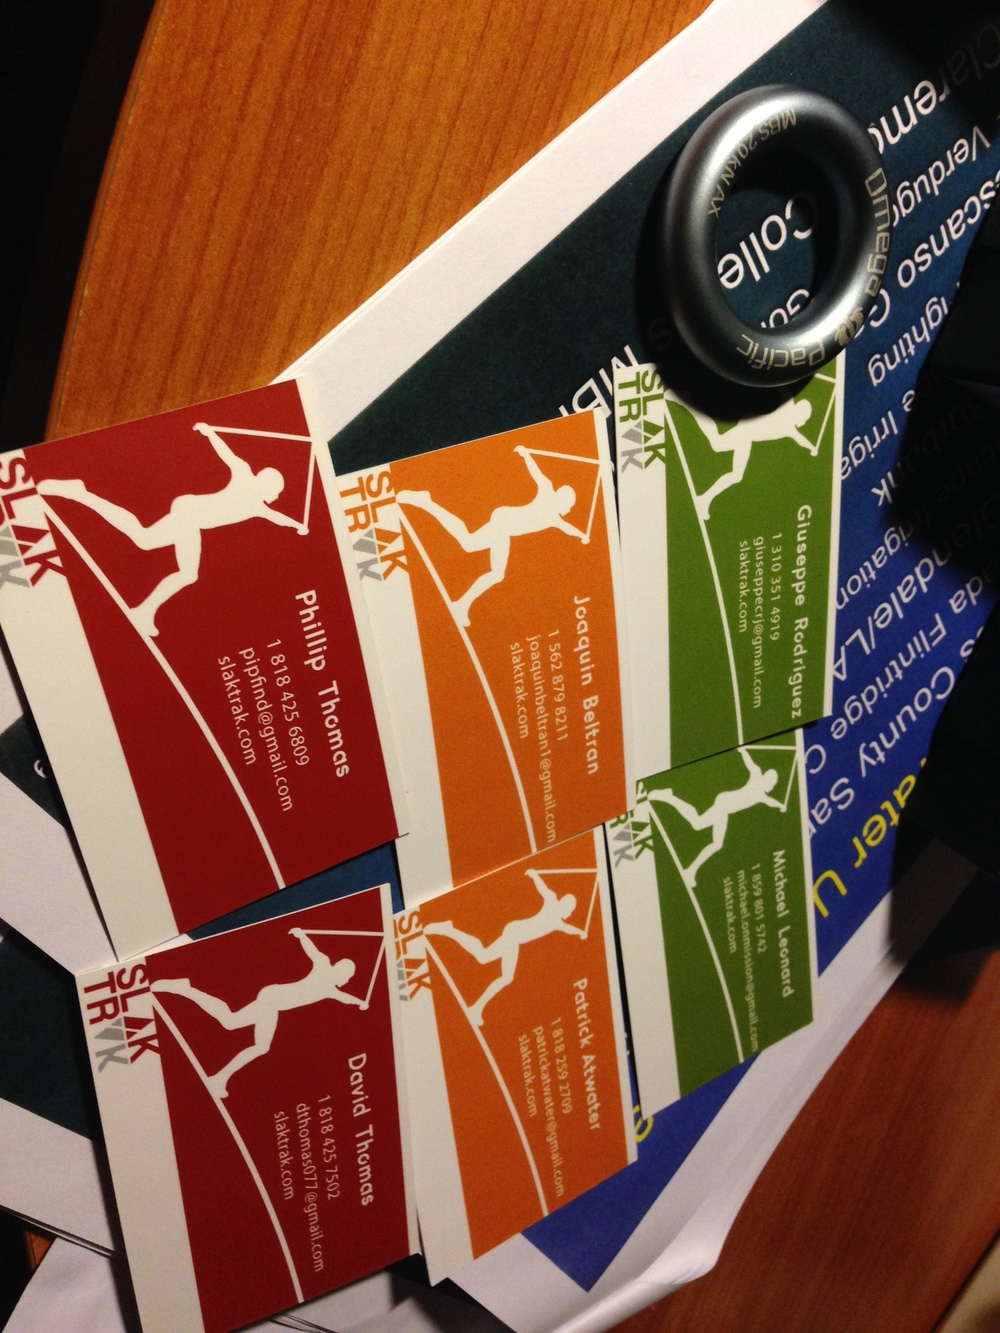 And check out our epicly designed business cards (thanks David and Ping!).